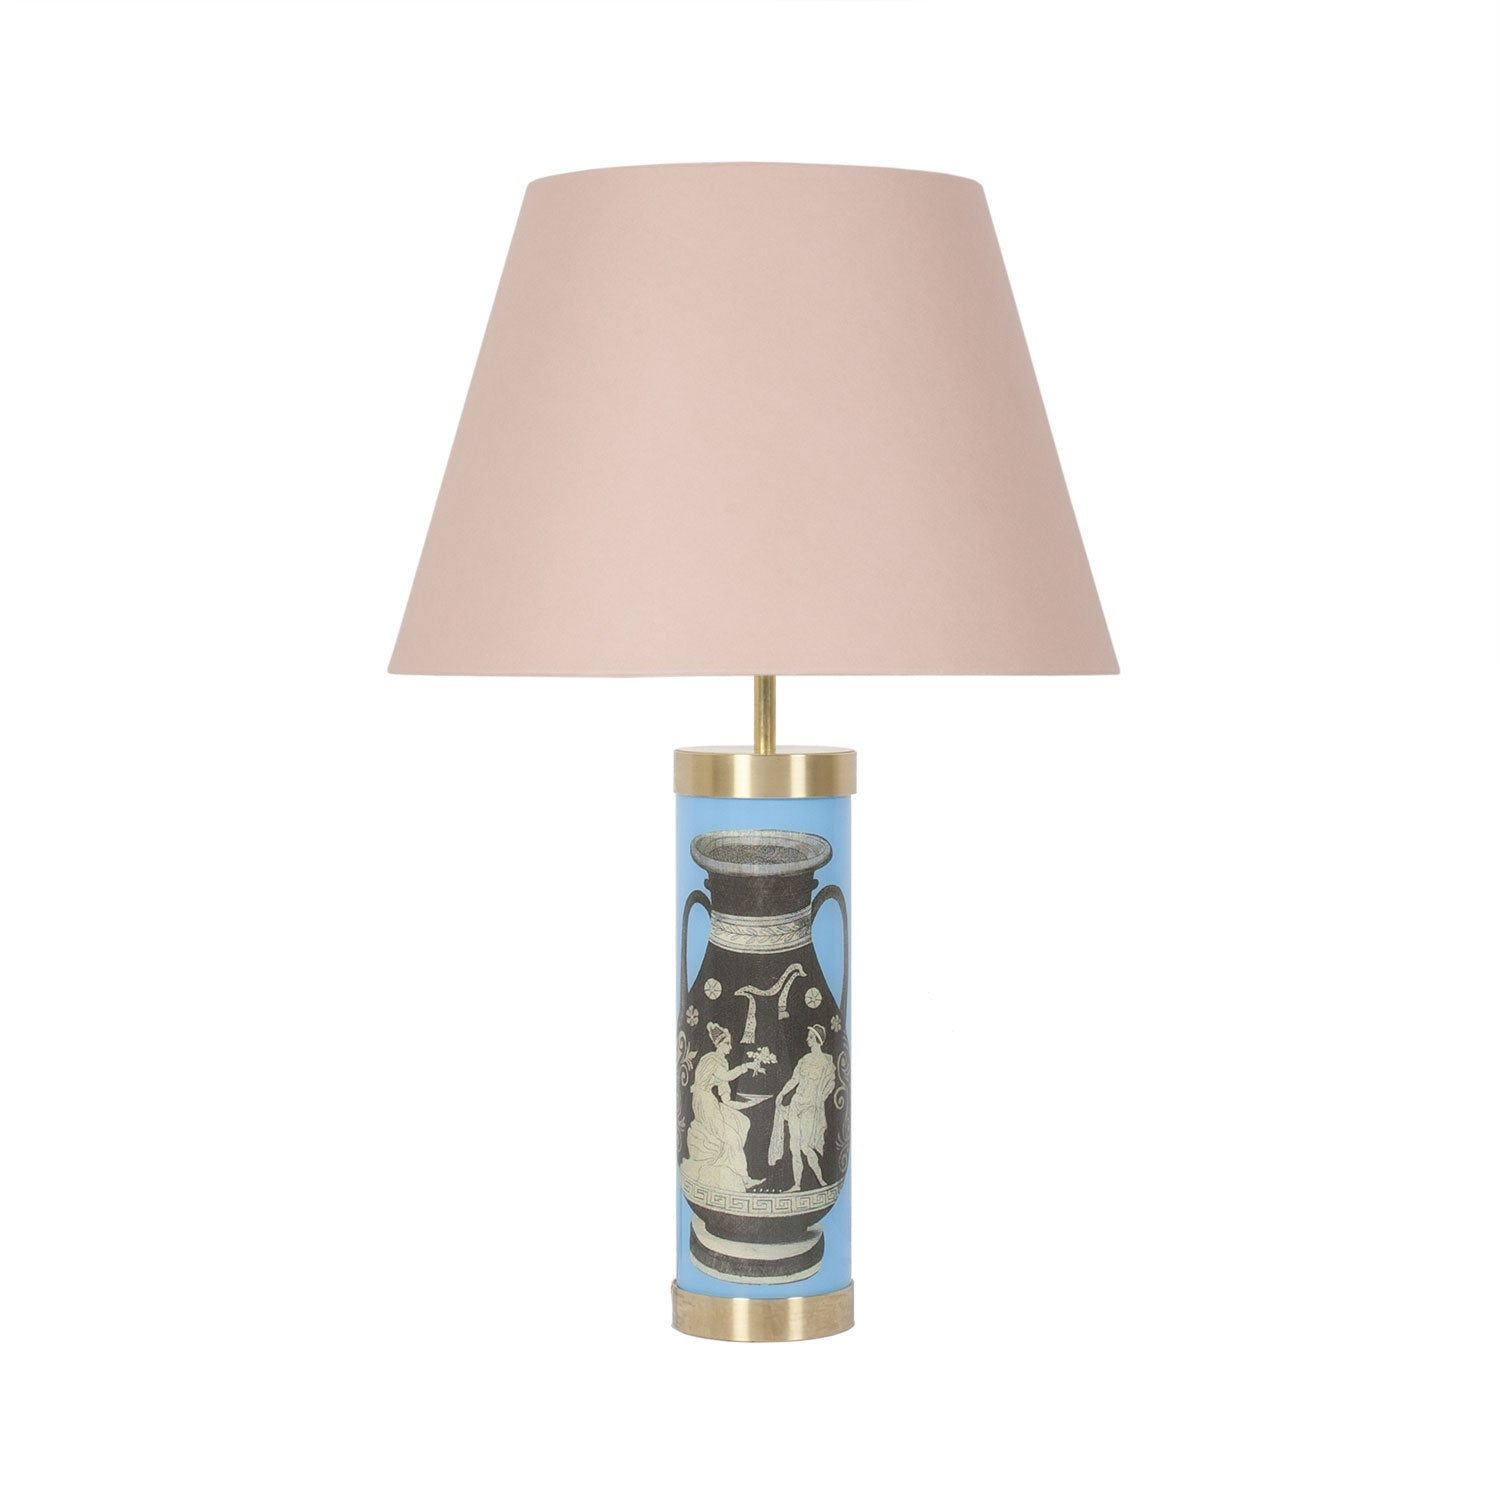 Glass & Brass Lamp - Urn Blue